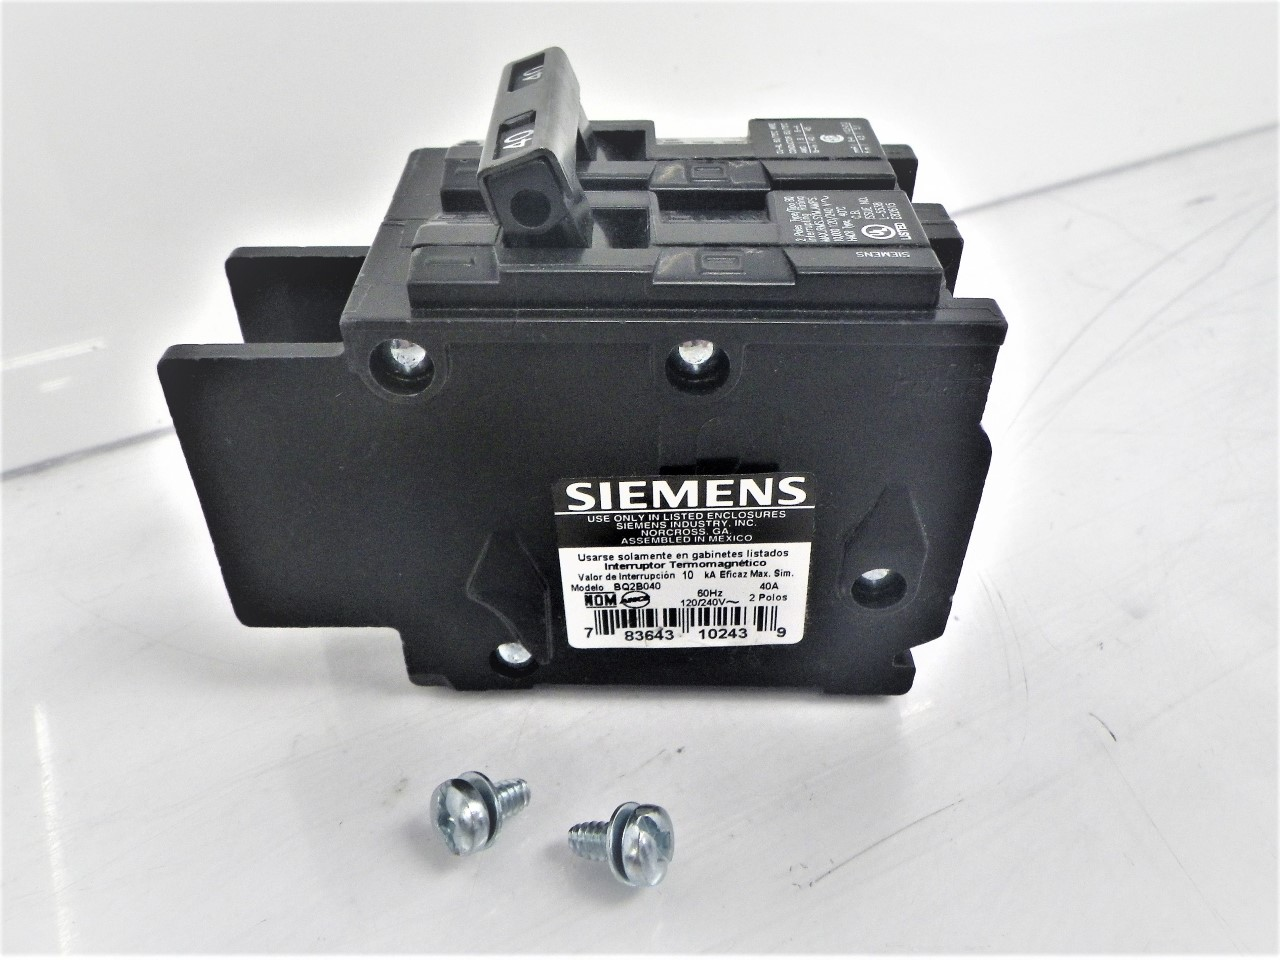 BQ2B040 Siemens Circuit Breaker 40A 120240V 2-Pole (NEW) (2)